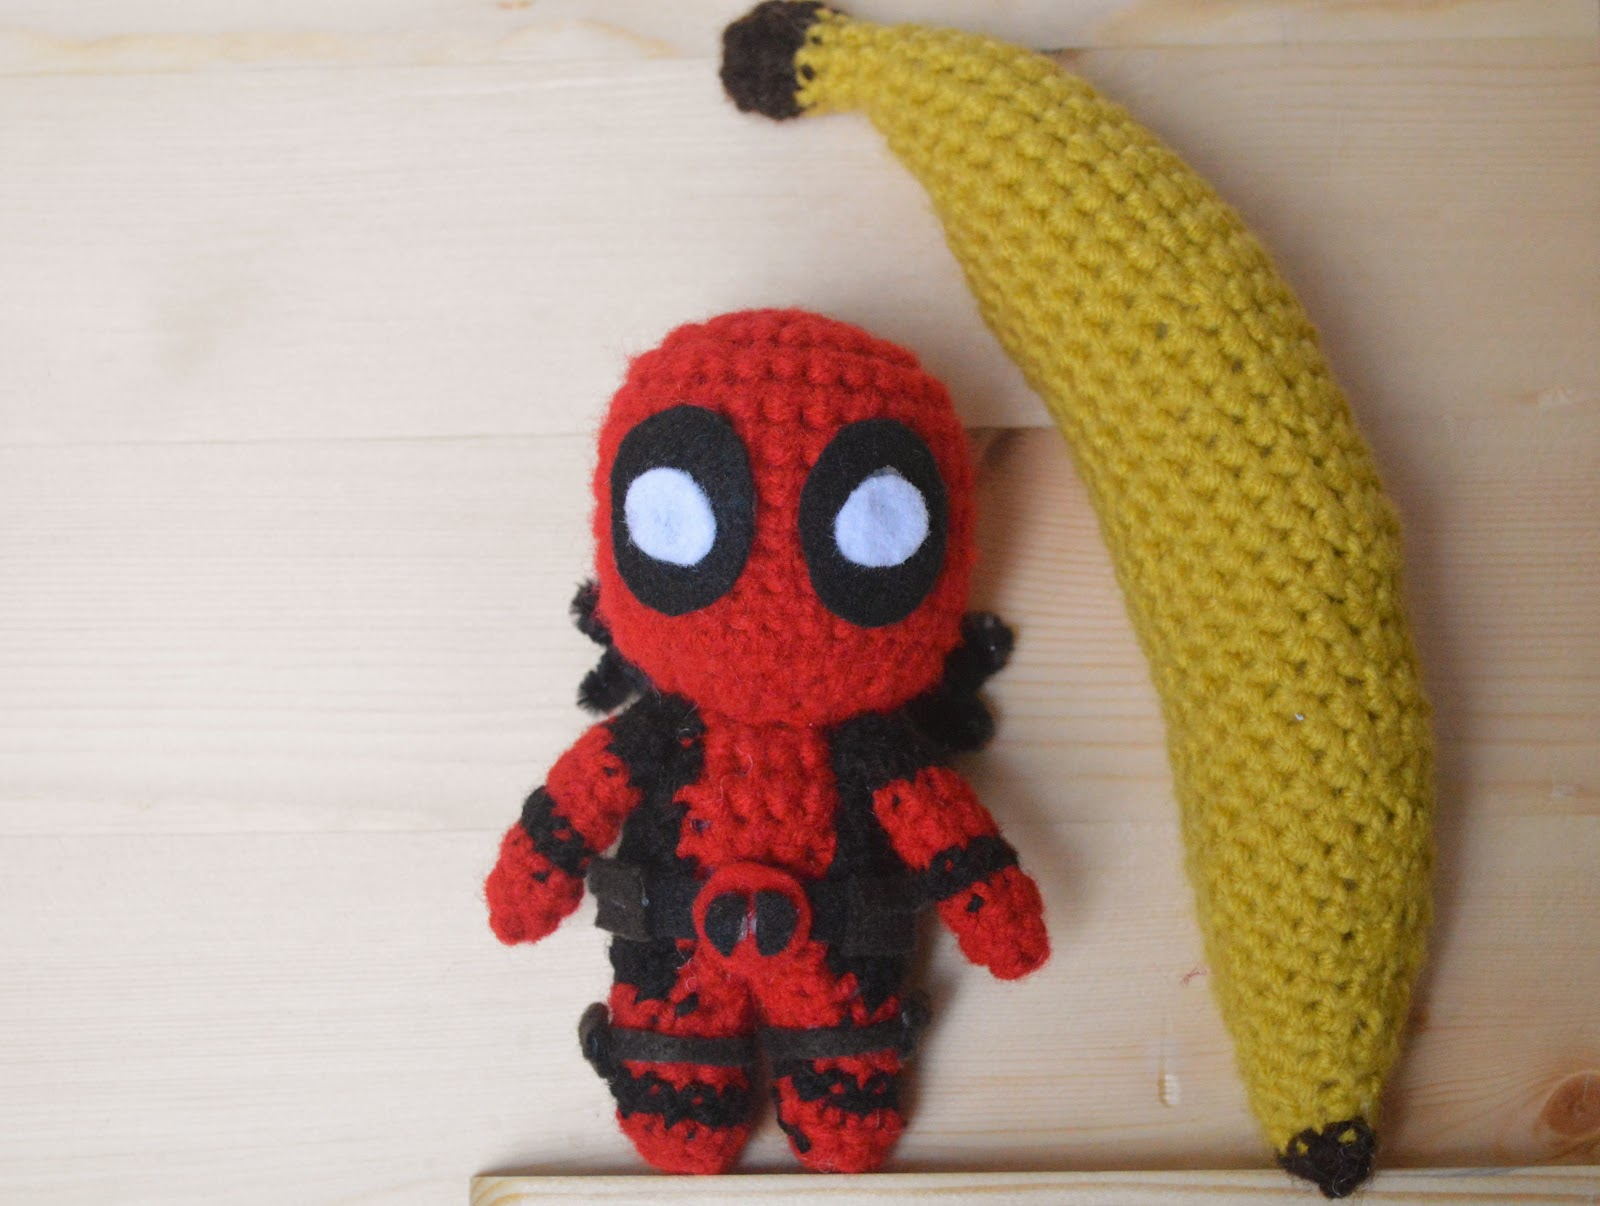 Deadpool Crochet Pattern - LoopTeeLoops